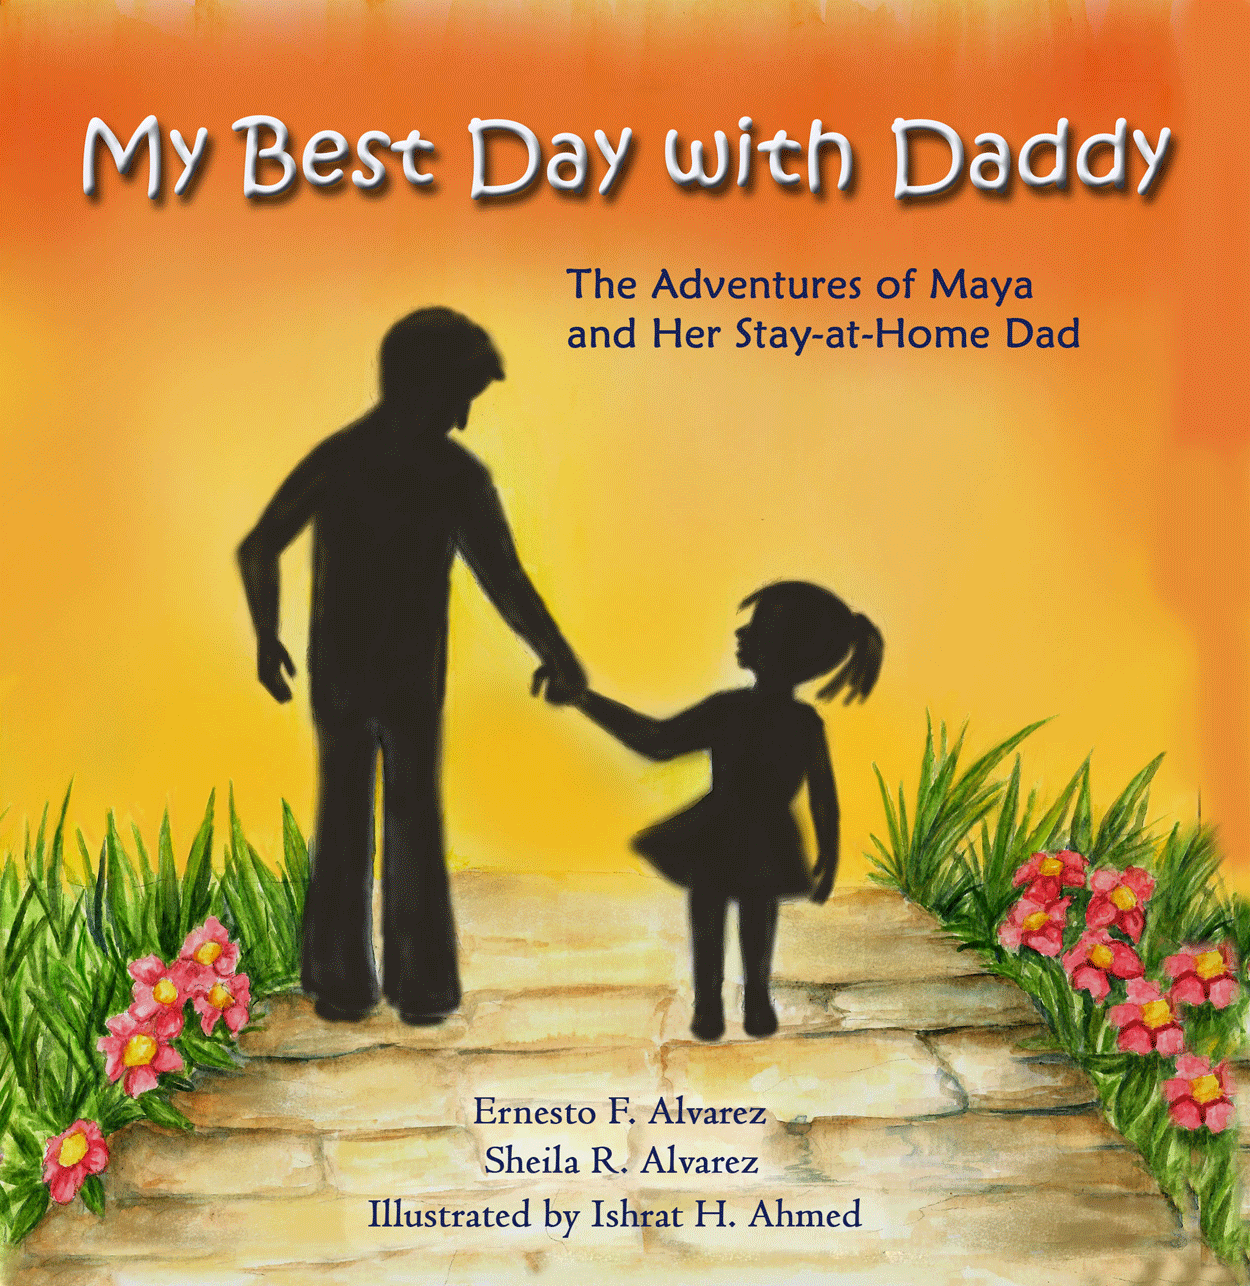 My-Best-Day-With-Daddy